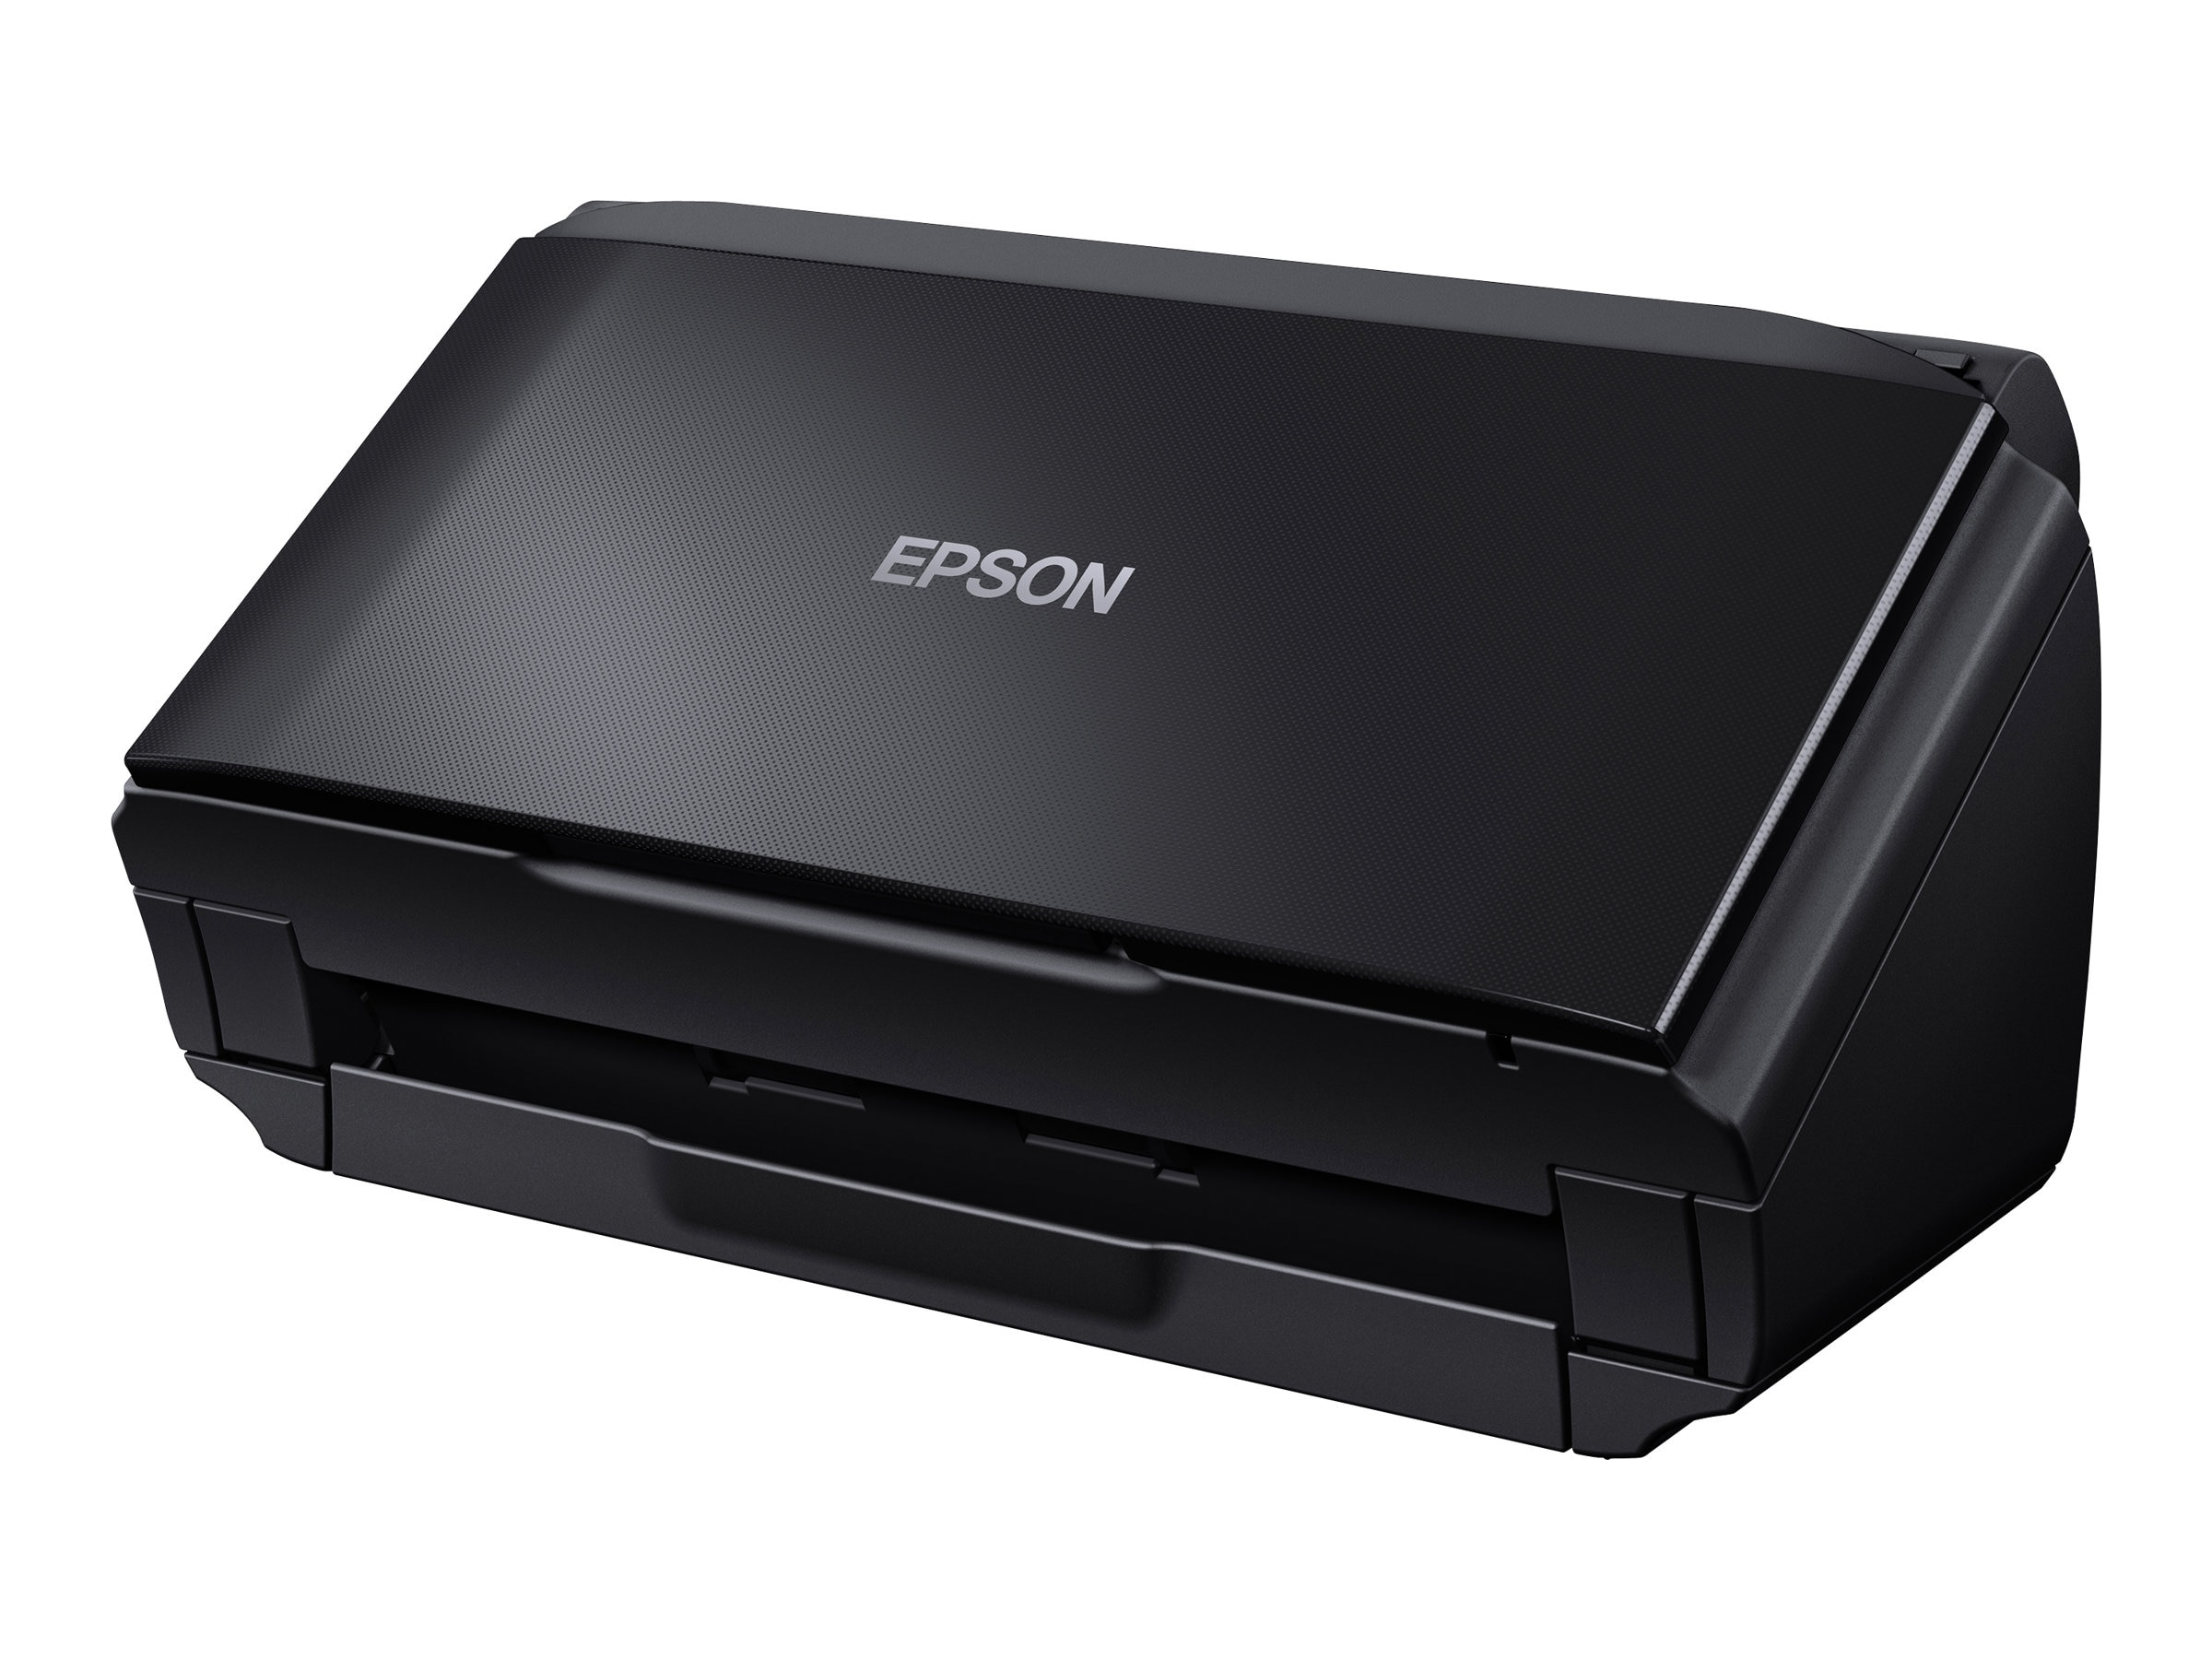 Epson WorkForce DS-520 Document Scanner (no retail) - $399.99 less instant rebate of $20.00, B11B234201, 17952219, Scanners